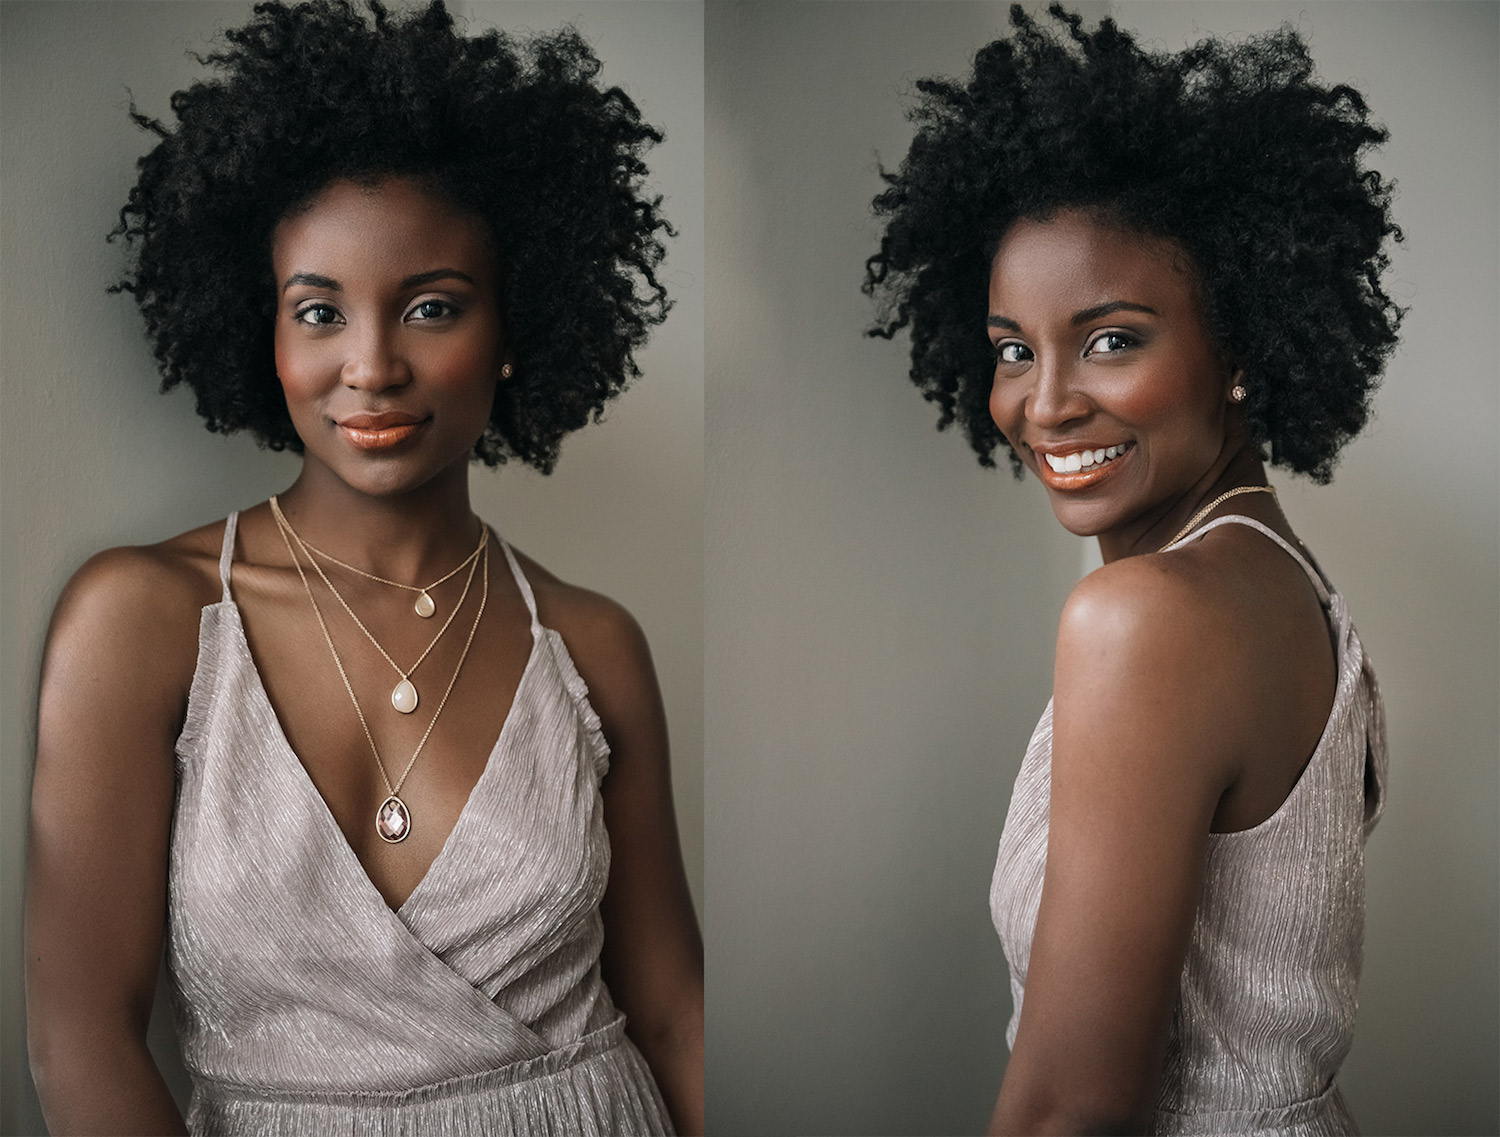 african-american-woman-natural-hair.jpg